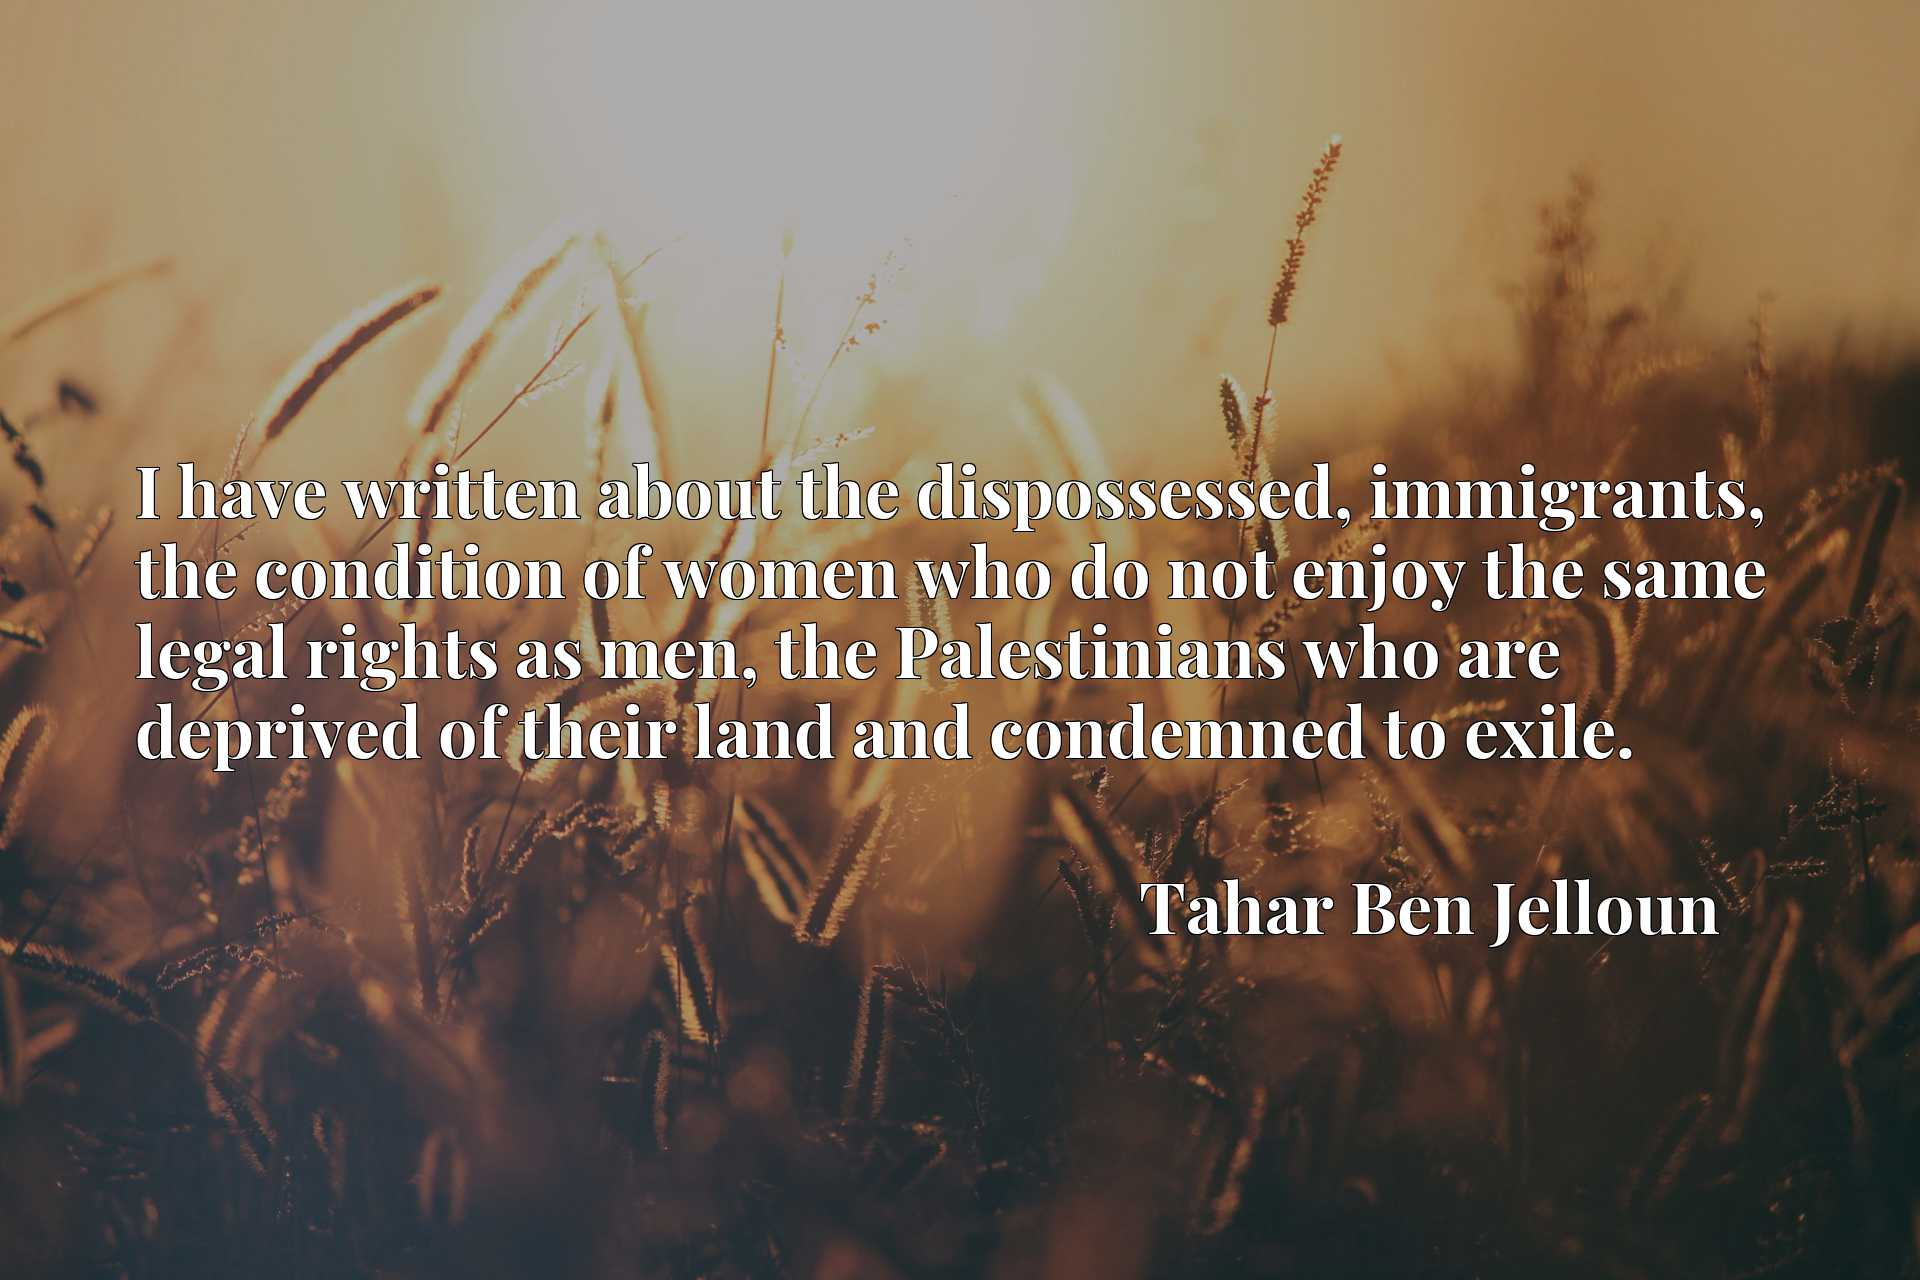 Quote Picture :I have written about the dispossessed, immigrants, the condition of women who do not enjoy the same legal rights as men, the Palestinians who are deprived of their land and condemned to exile.